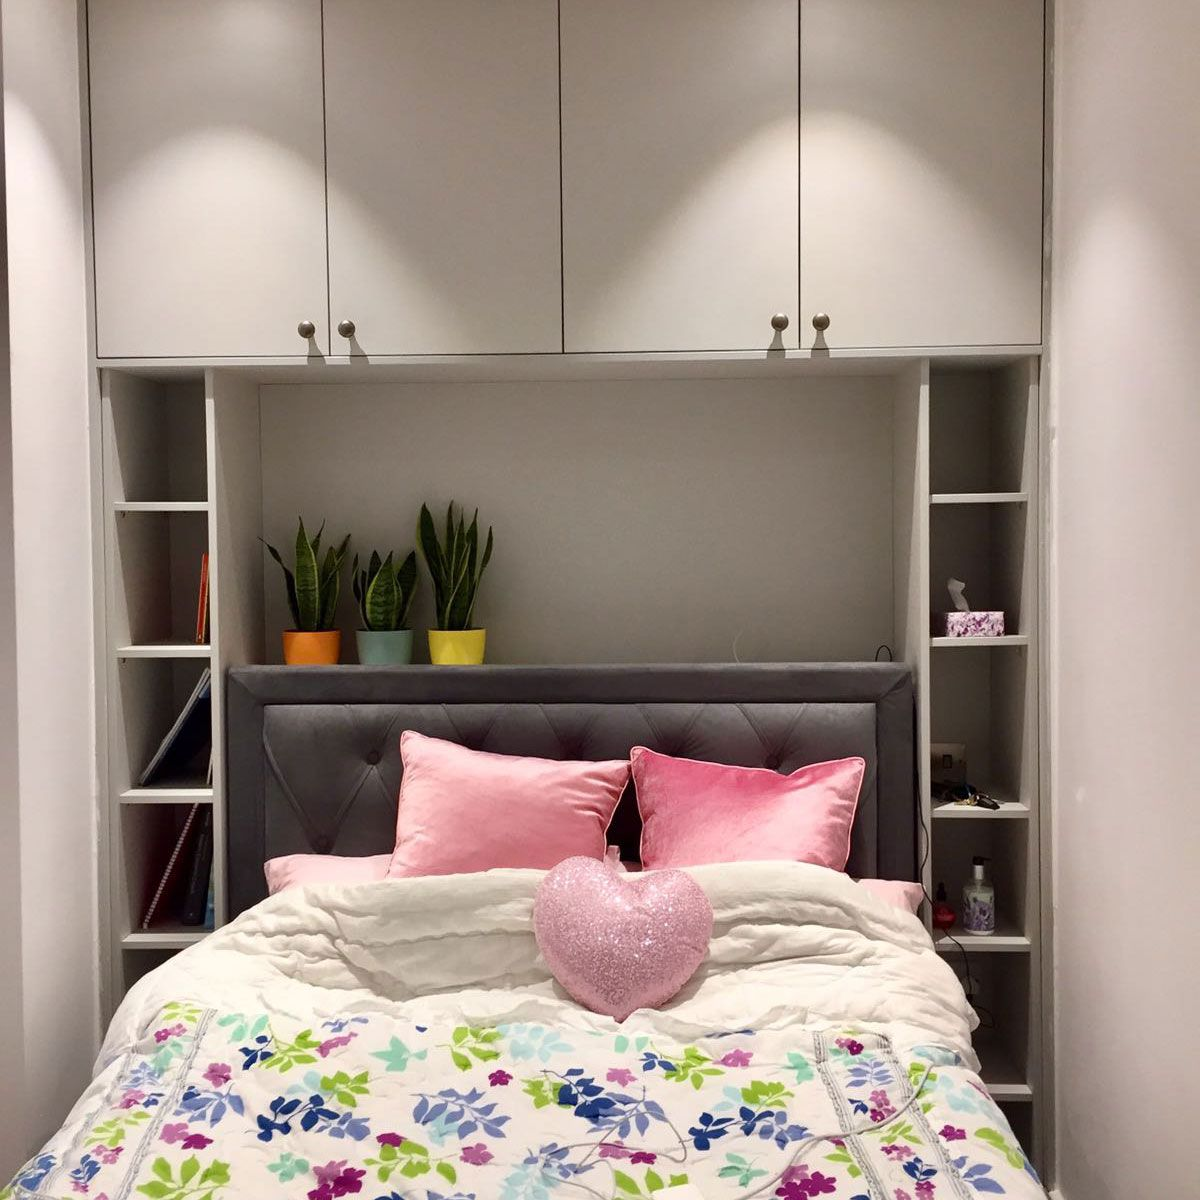 Fitted Bedrooms And Wardrobes Fitted Bedrooms Fitted Bedroom